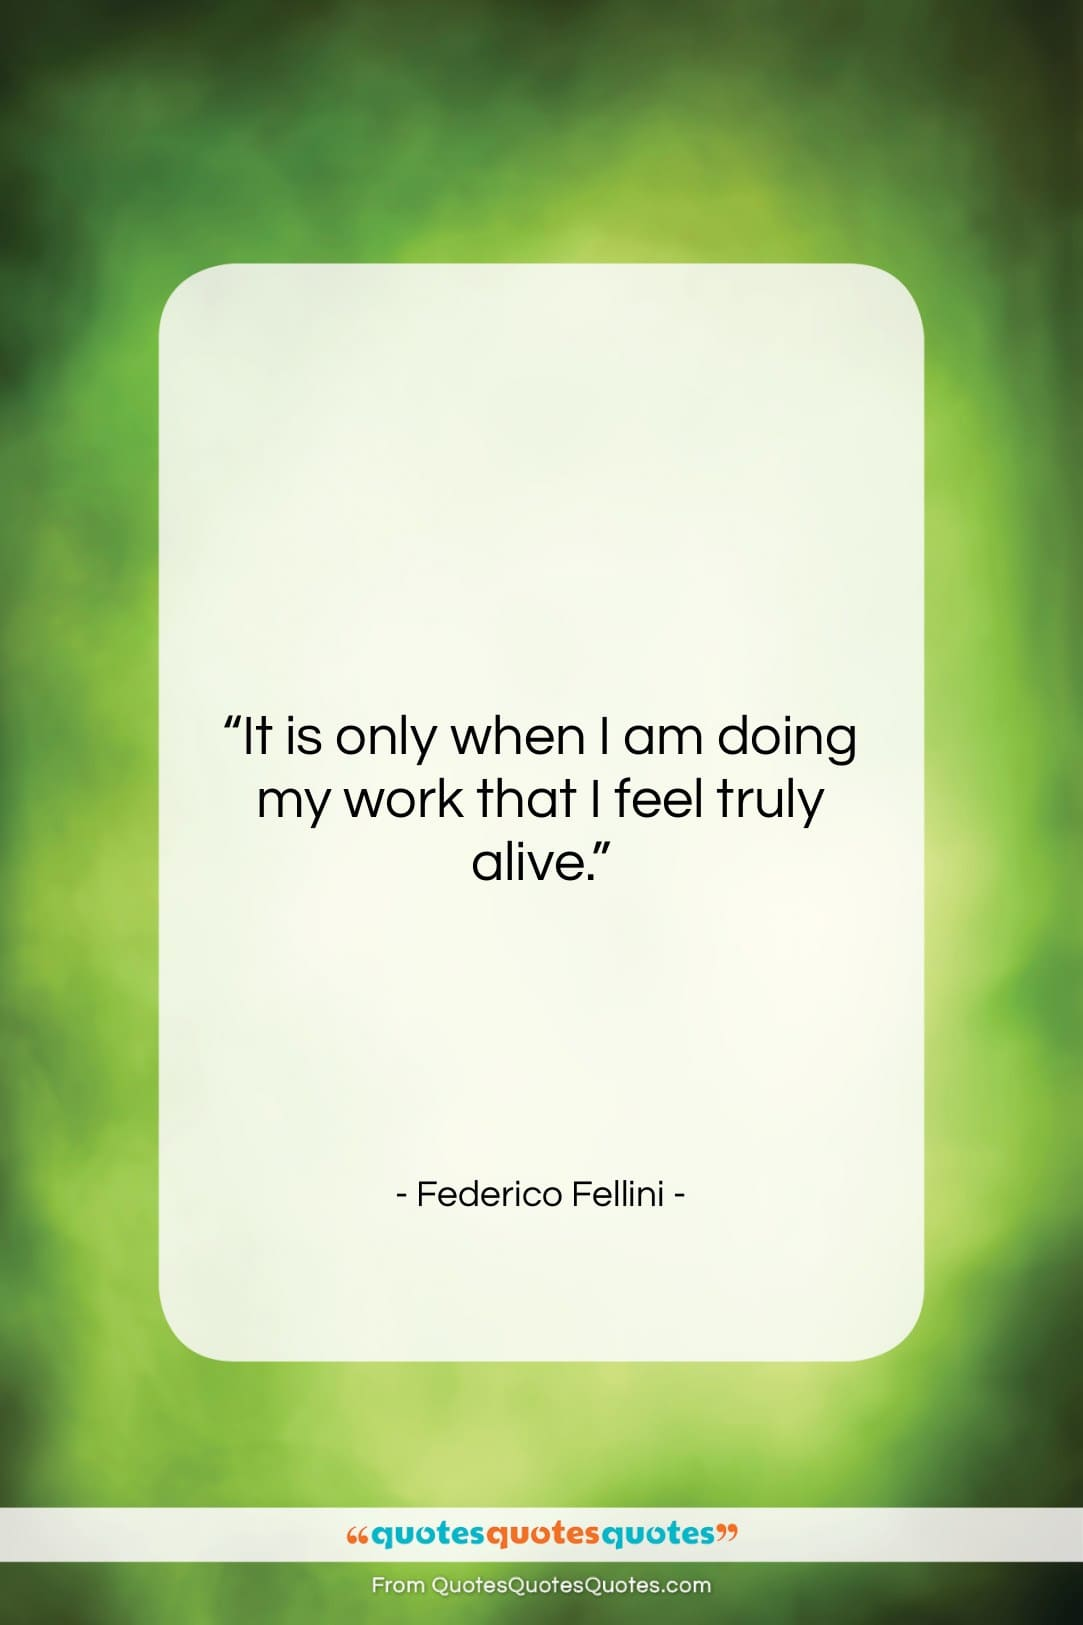 """Federico Fellini quote: """"It is only when I am doing…""""- at QuotesQuotesQuotes.com"""